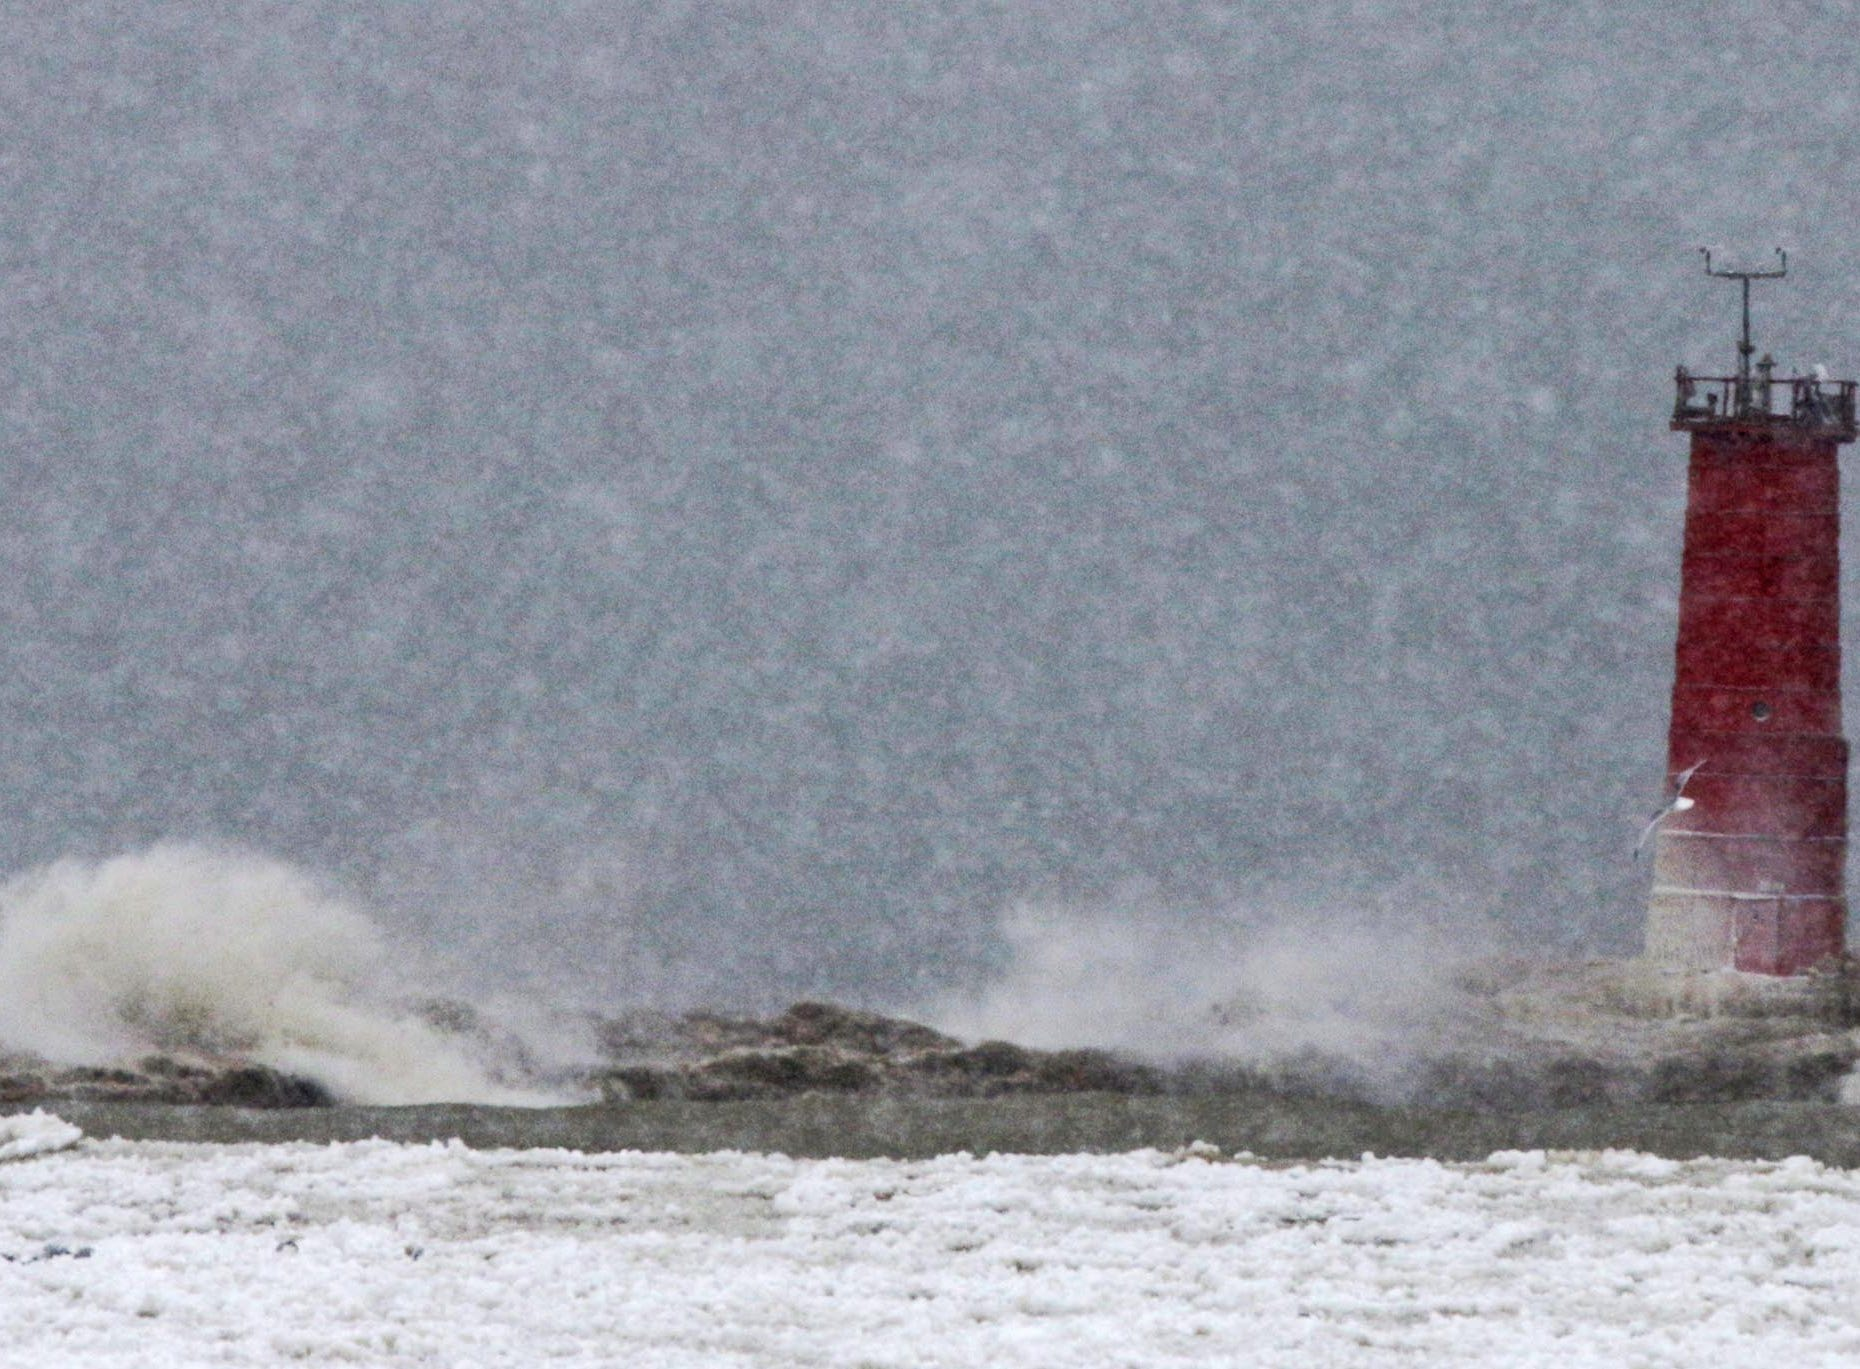 Waves bash against the breakwater by the Sheboygan lighthouse, Monday, Jan. 28, 2019, in Sheboygan, Wis. Winter weather in the area also has brought rough water on the lake.